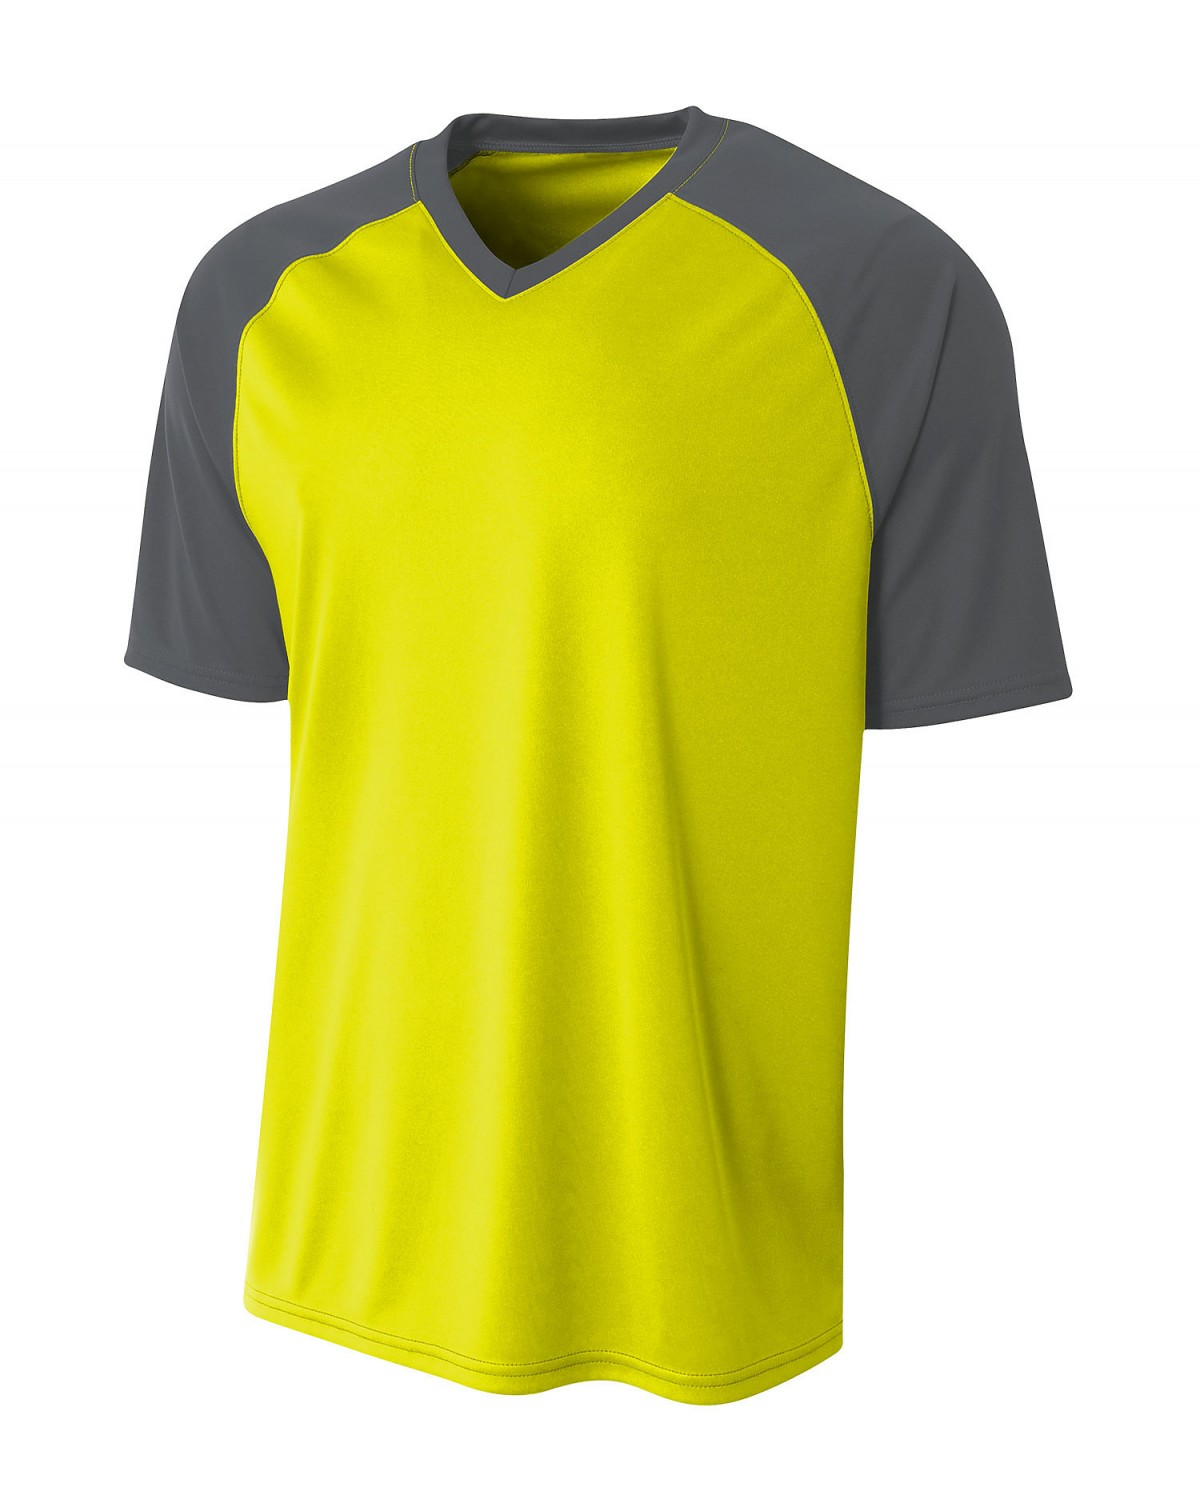 A4NB3373 A4 Safety Yellow/Graphite